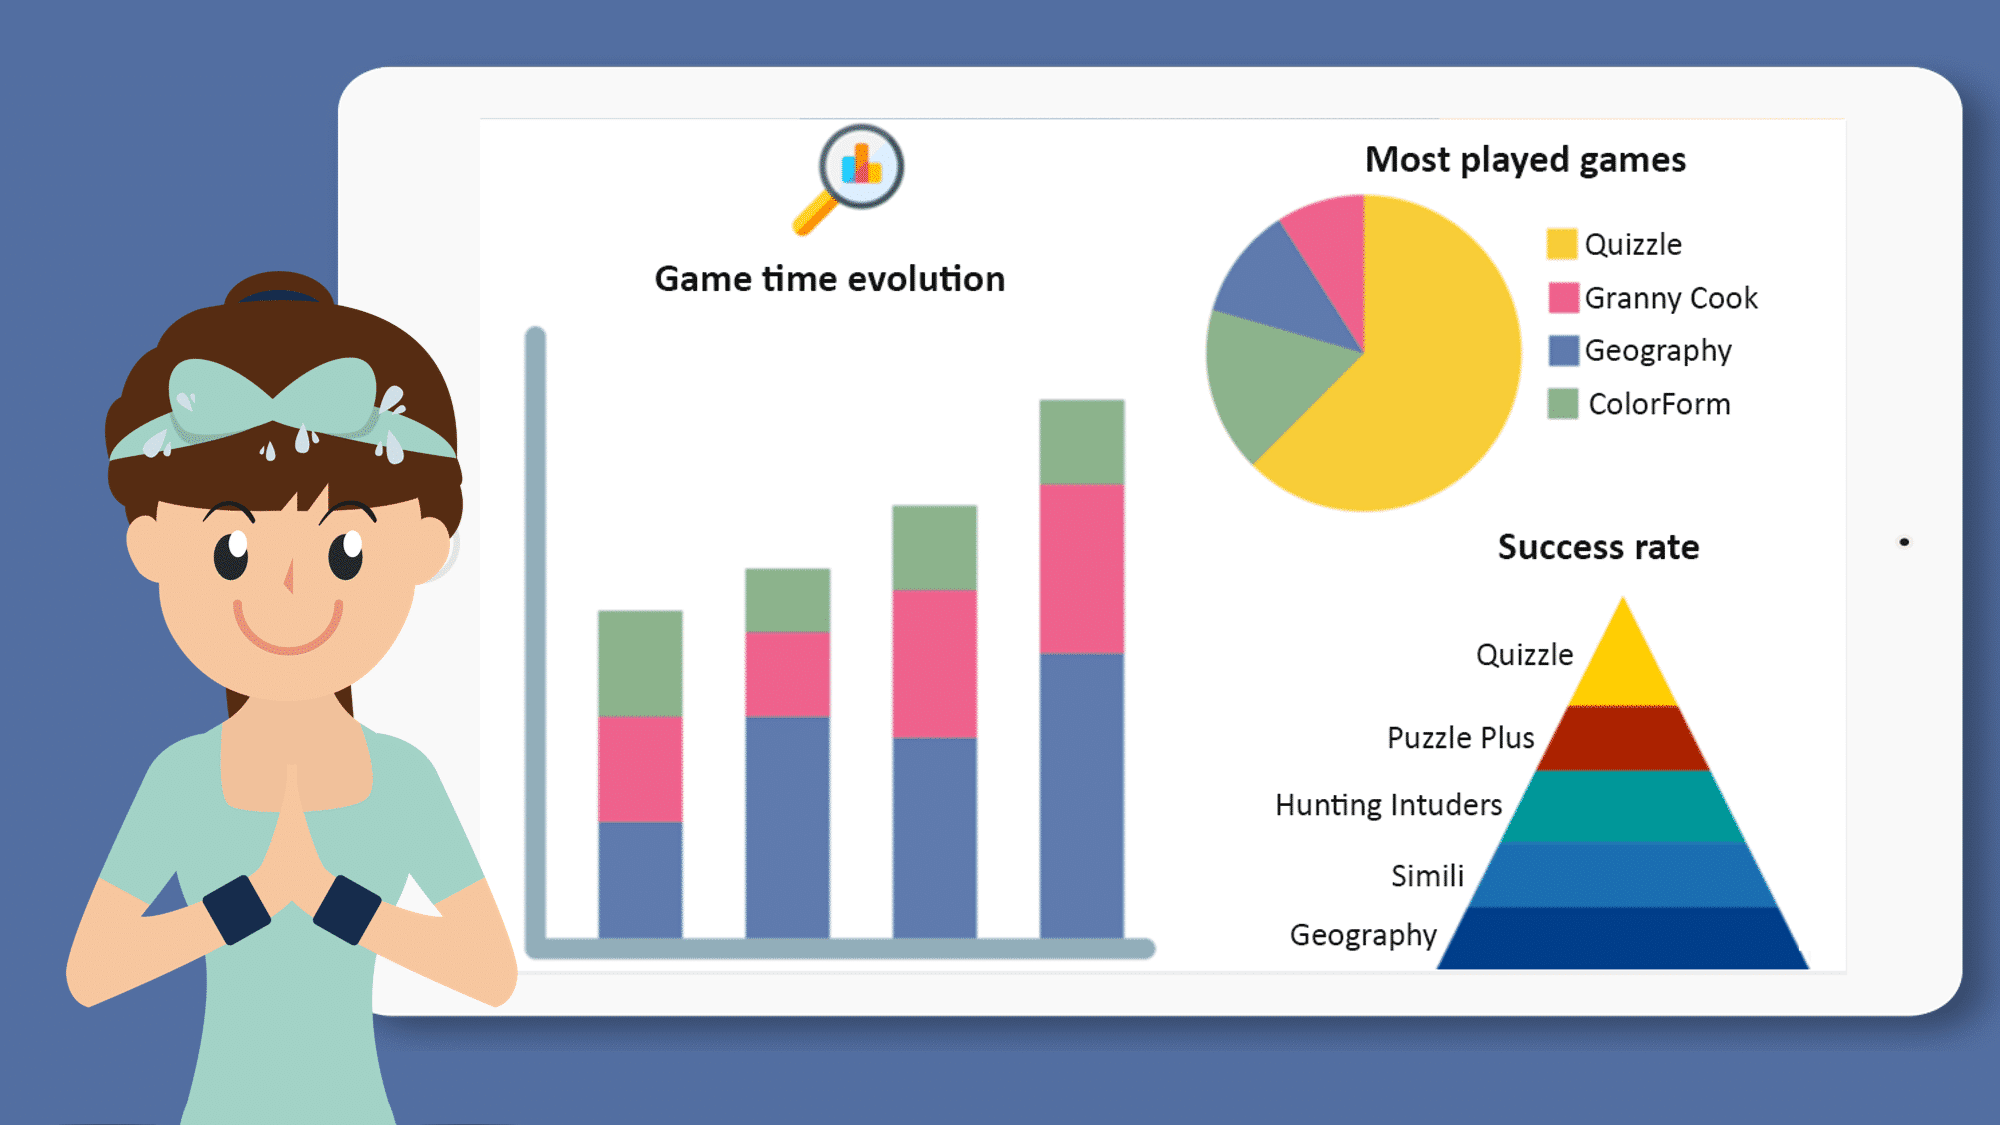 scarlett-dynseo-games-for-elderly-games-for-old-people-tablet-for-seniors-activities-for-seniors-cognitive-games-dementia-activities-stats-new